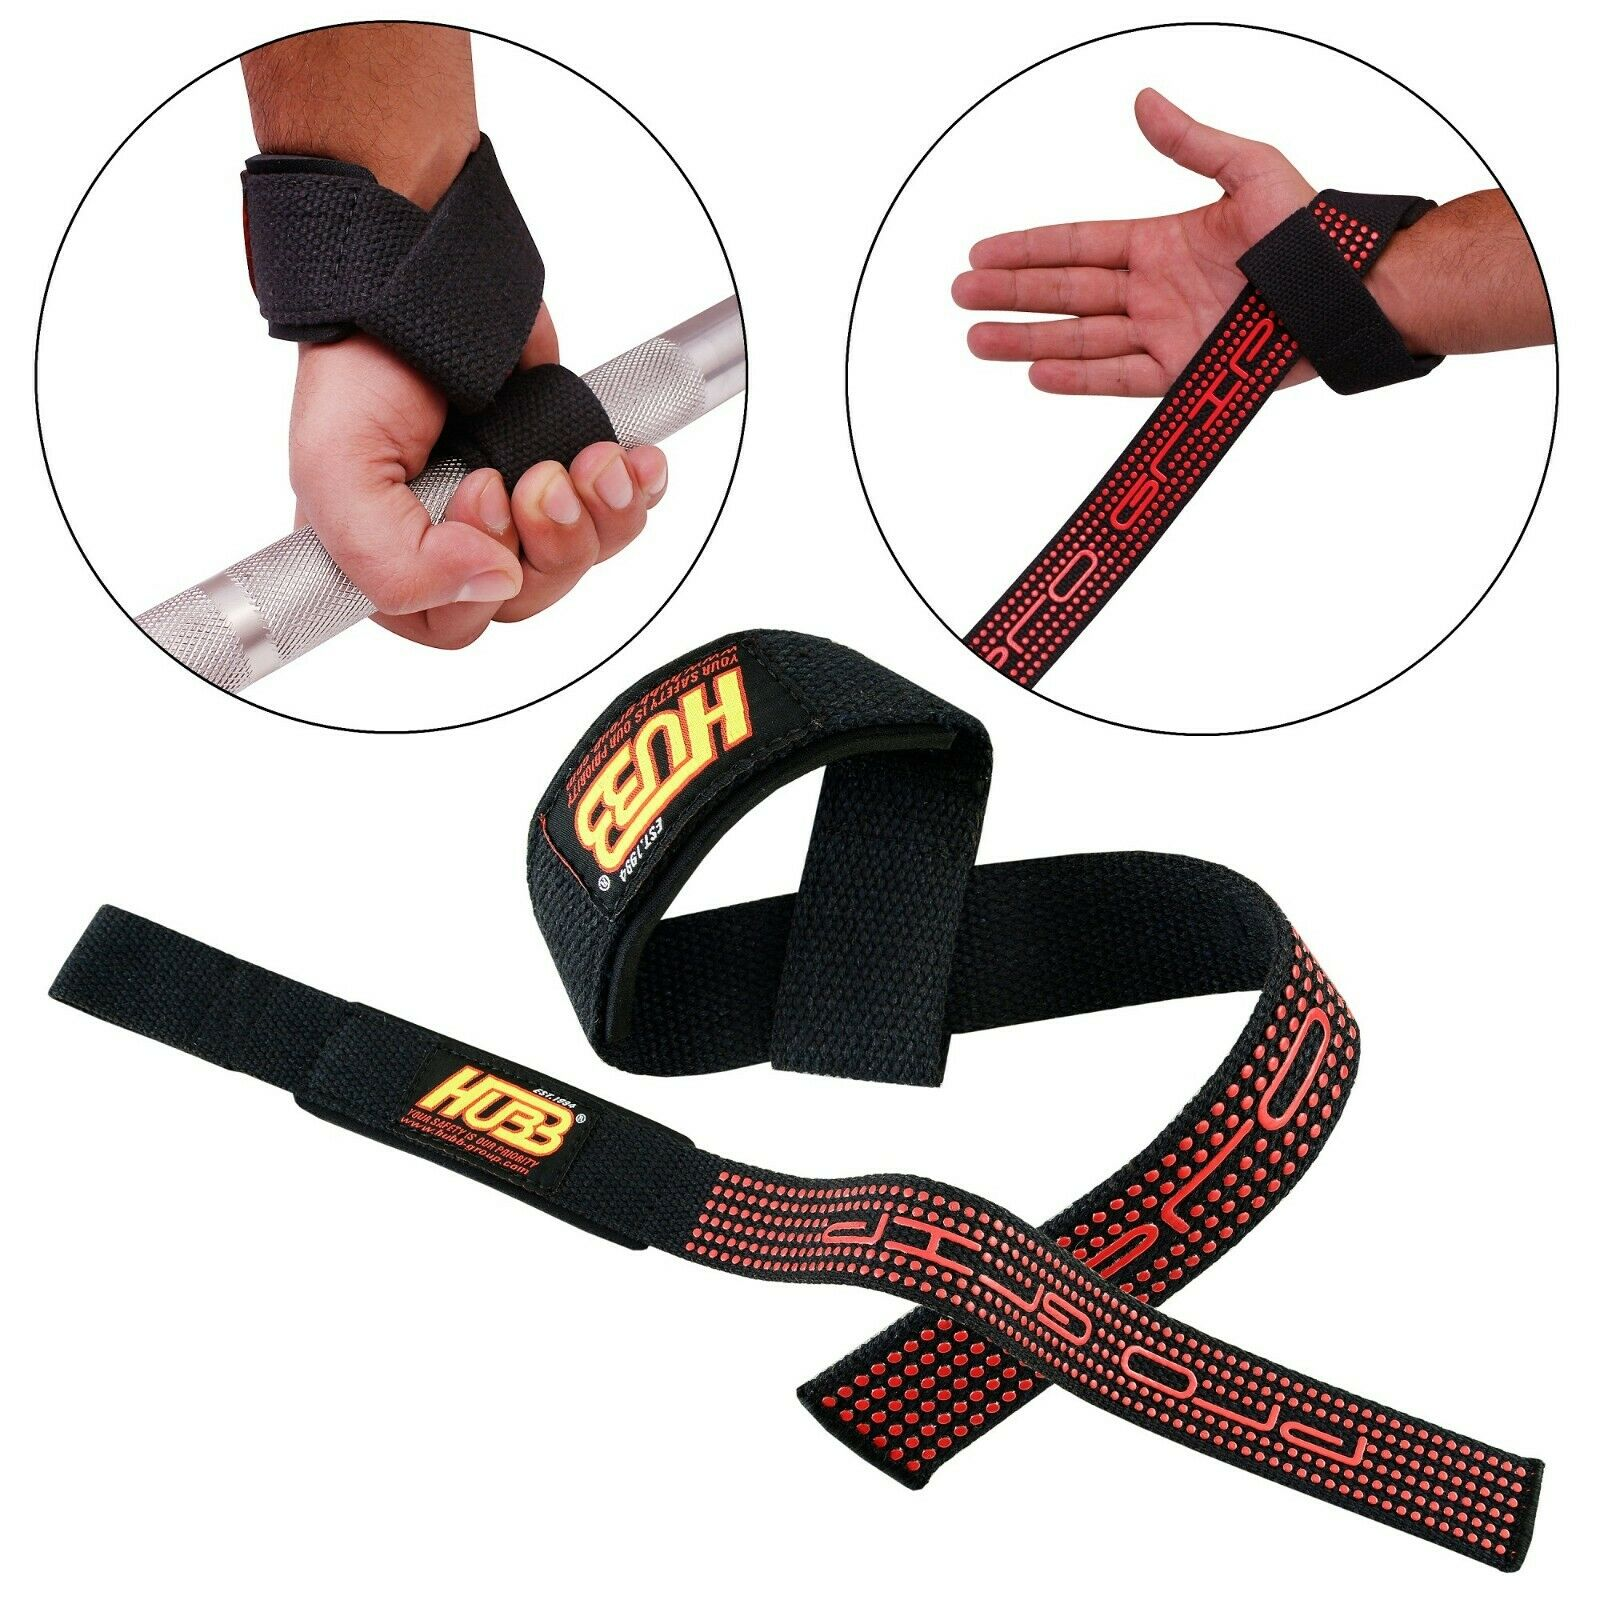 Gym Gloves Weight Lifting Leather Wrist Support Glove Aud: WEIGHT Lifting Gym Bar Straps Training Wrist Support Gym